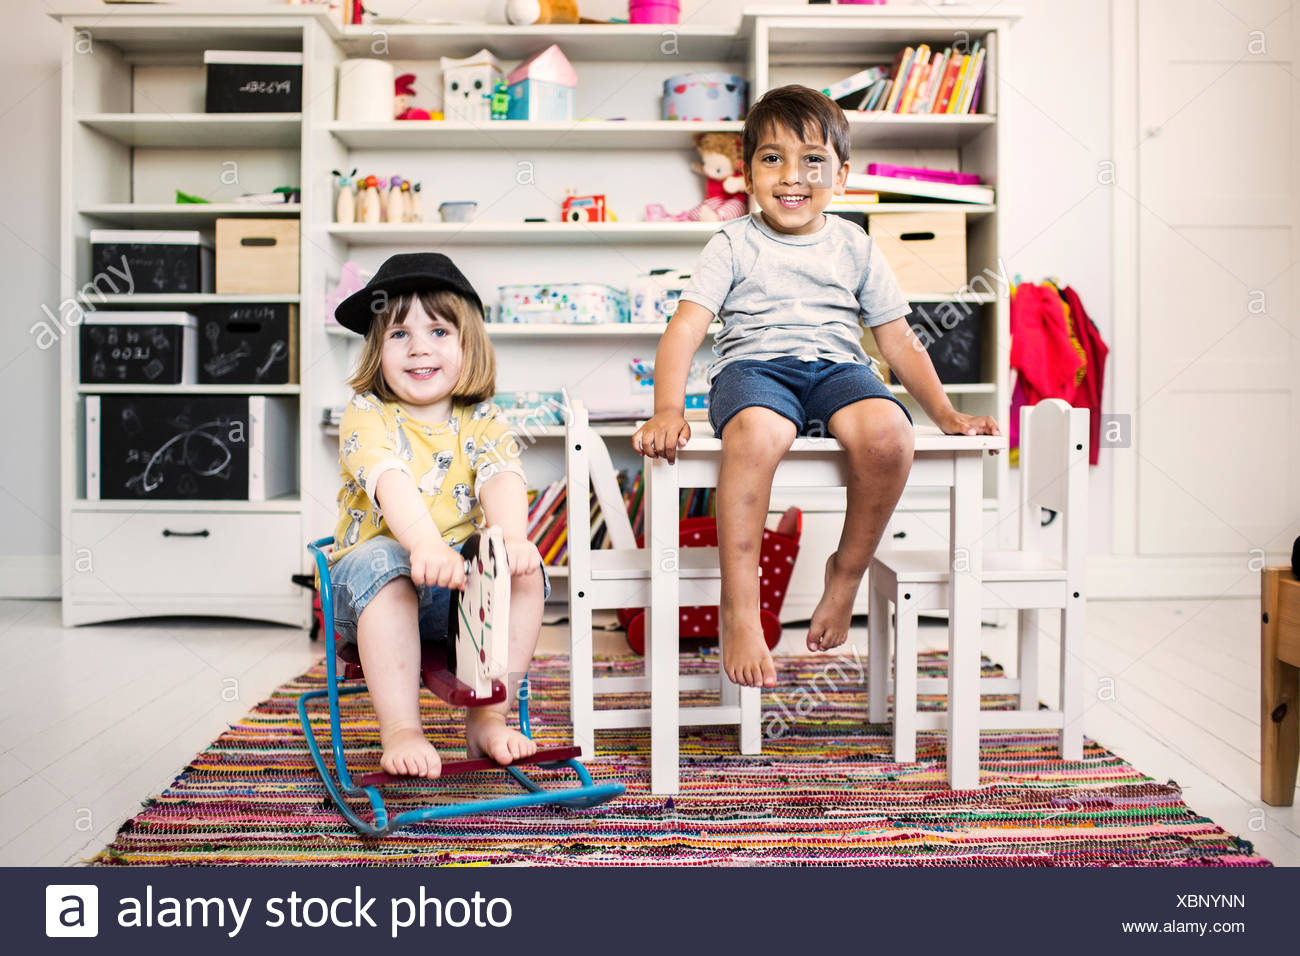 Children (2-3) smiling and looking at camera - Stock Image